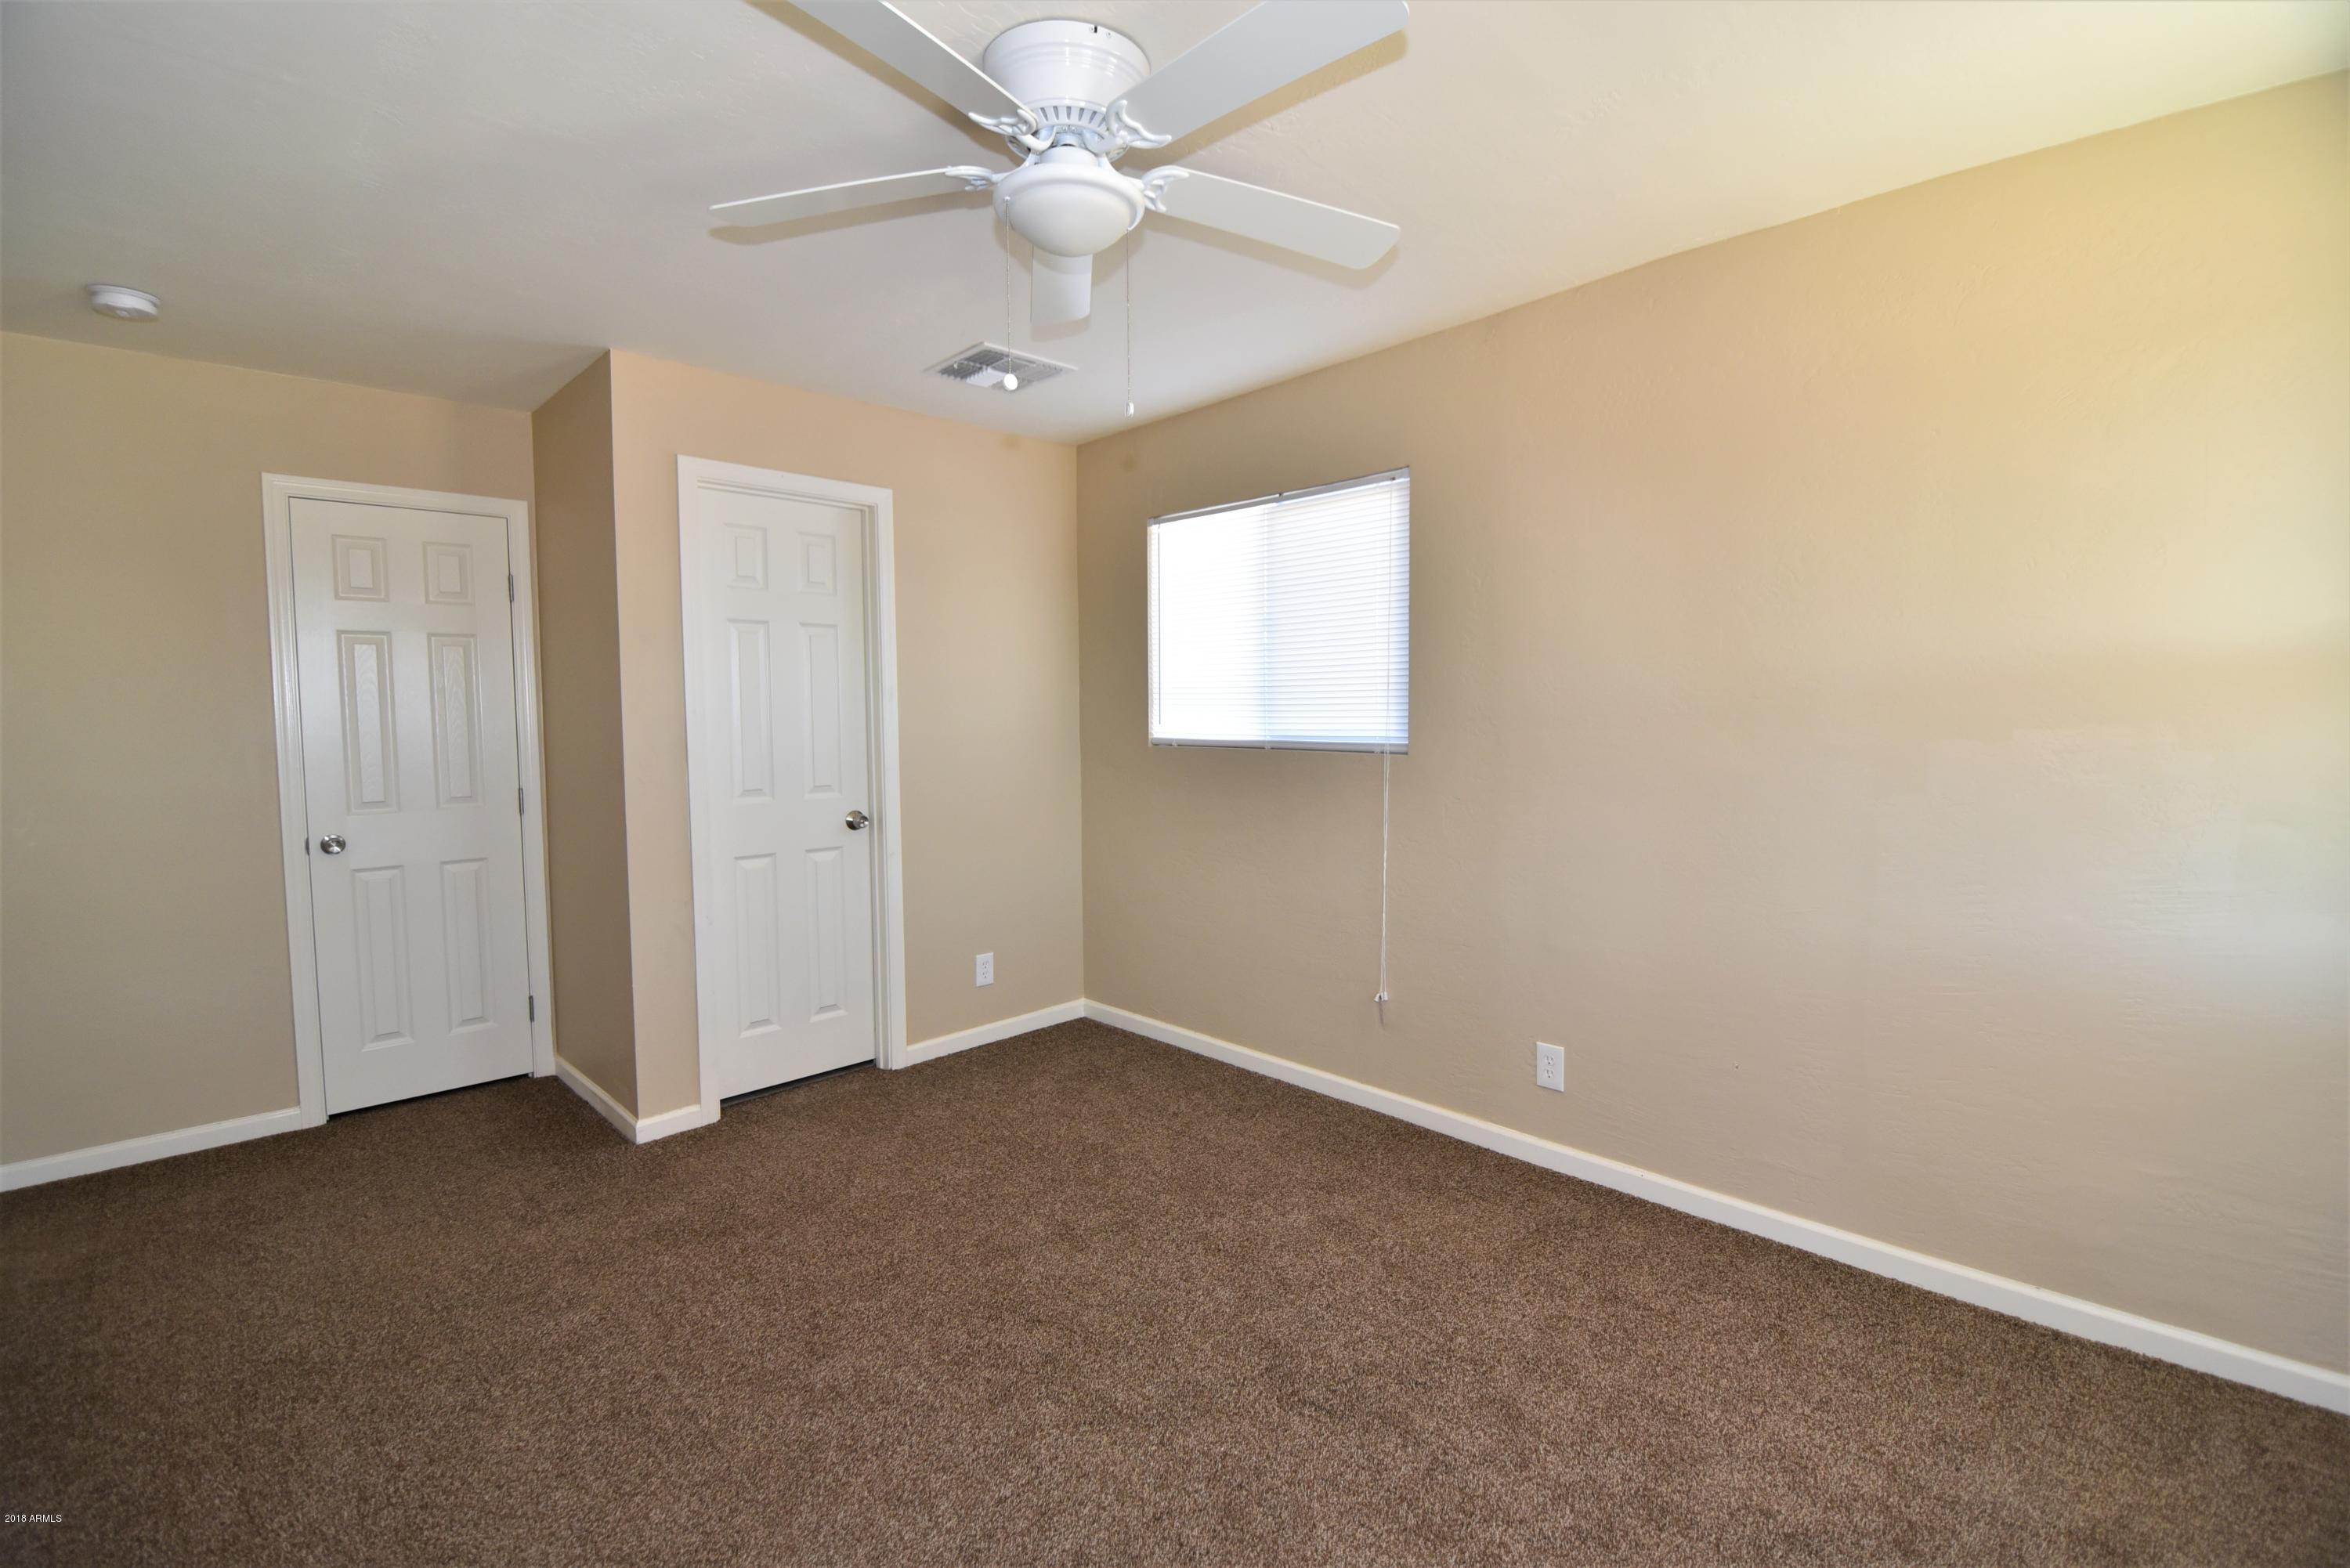 1842 N 37TH Avenue Phoenix, AZ 85009 - MLS #: 5859322